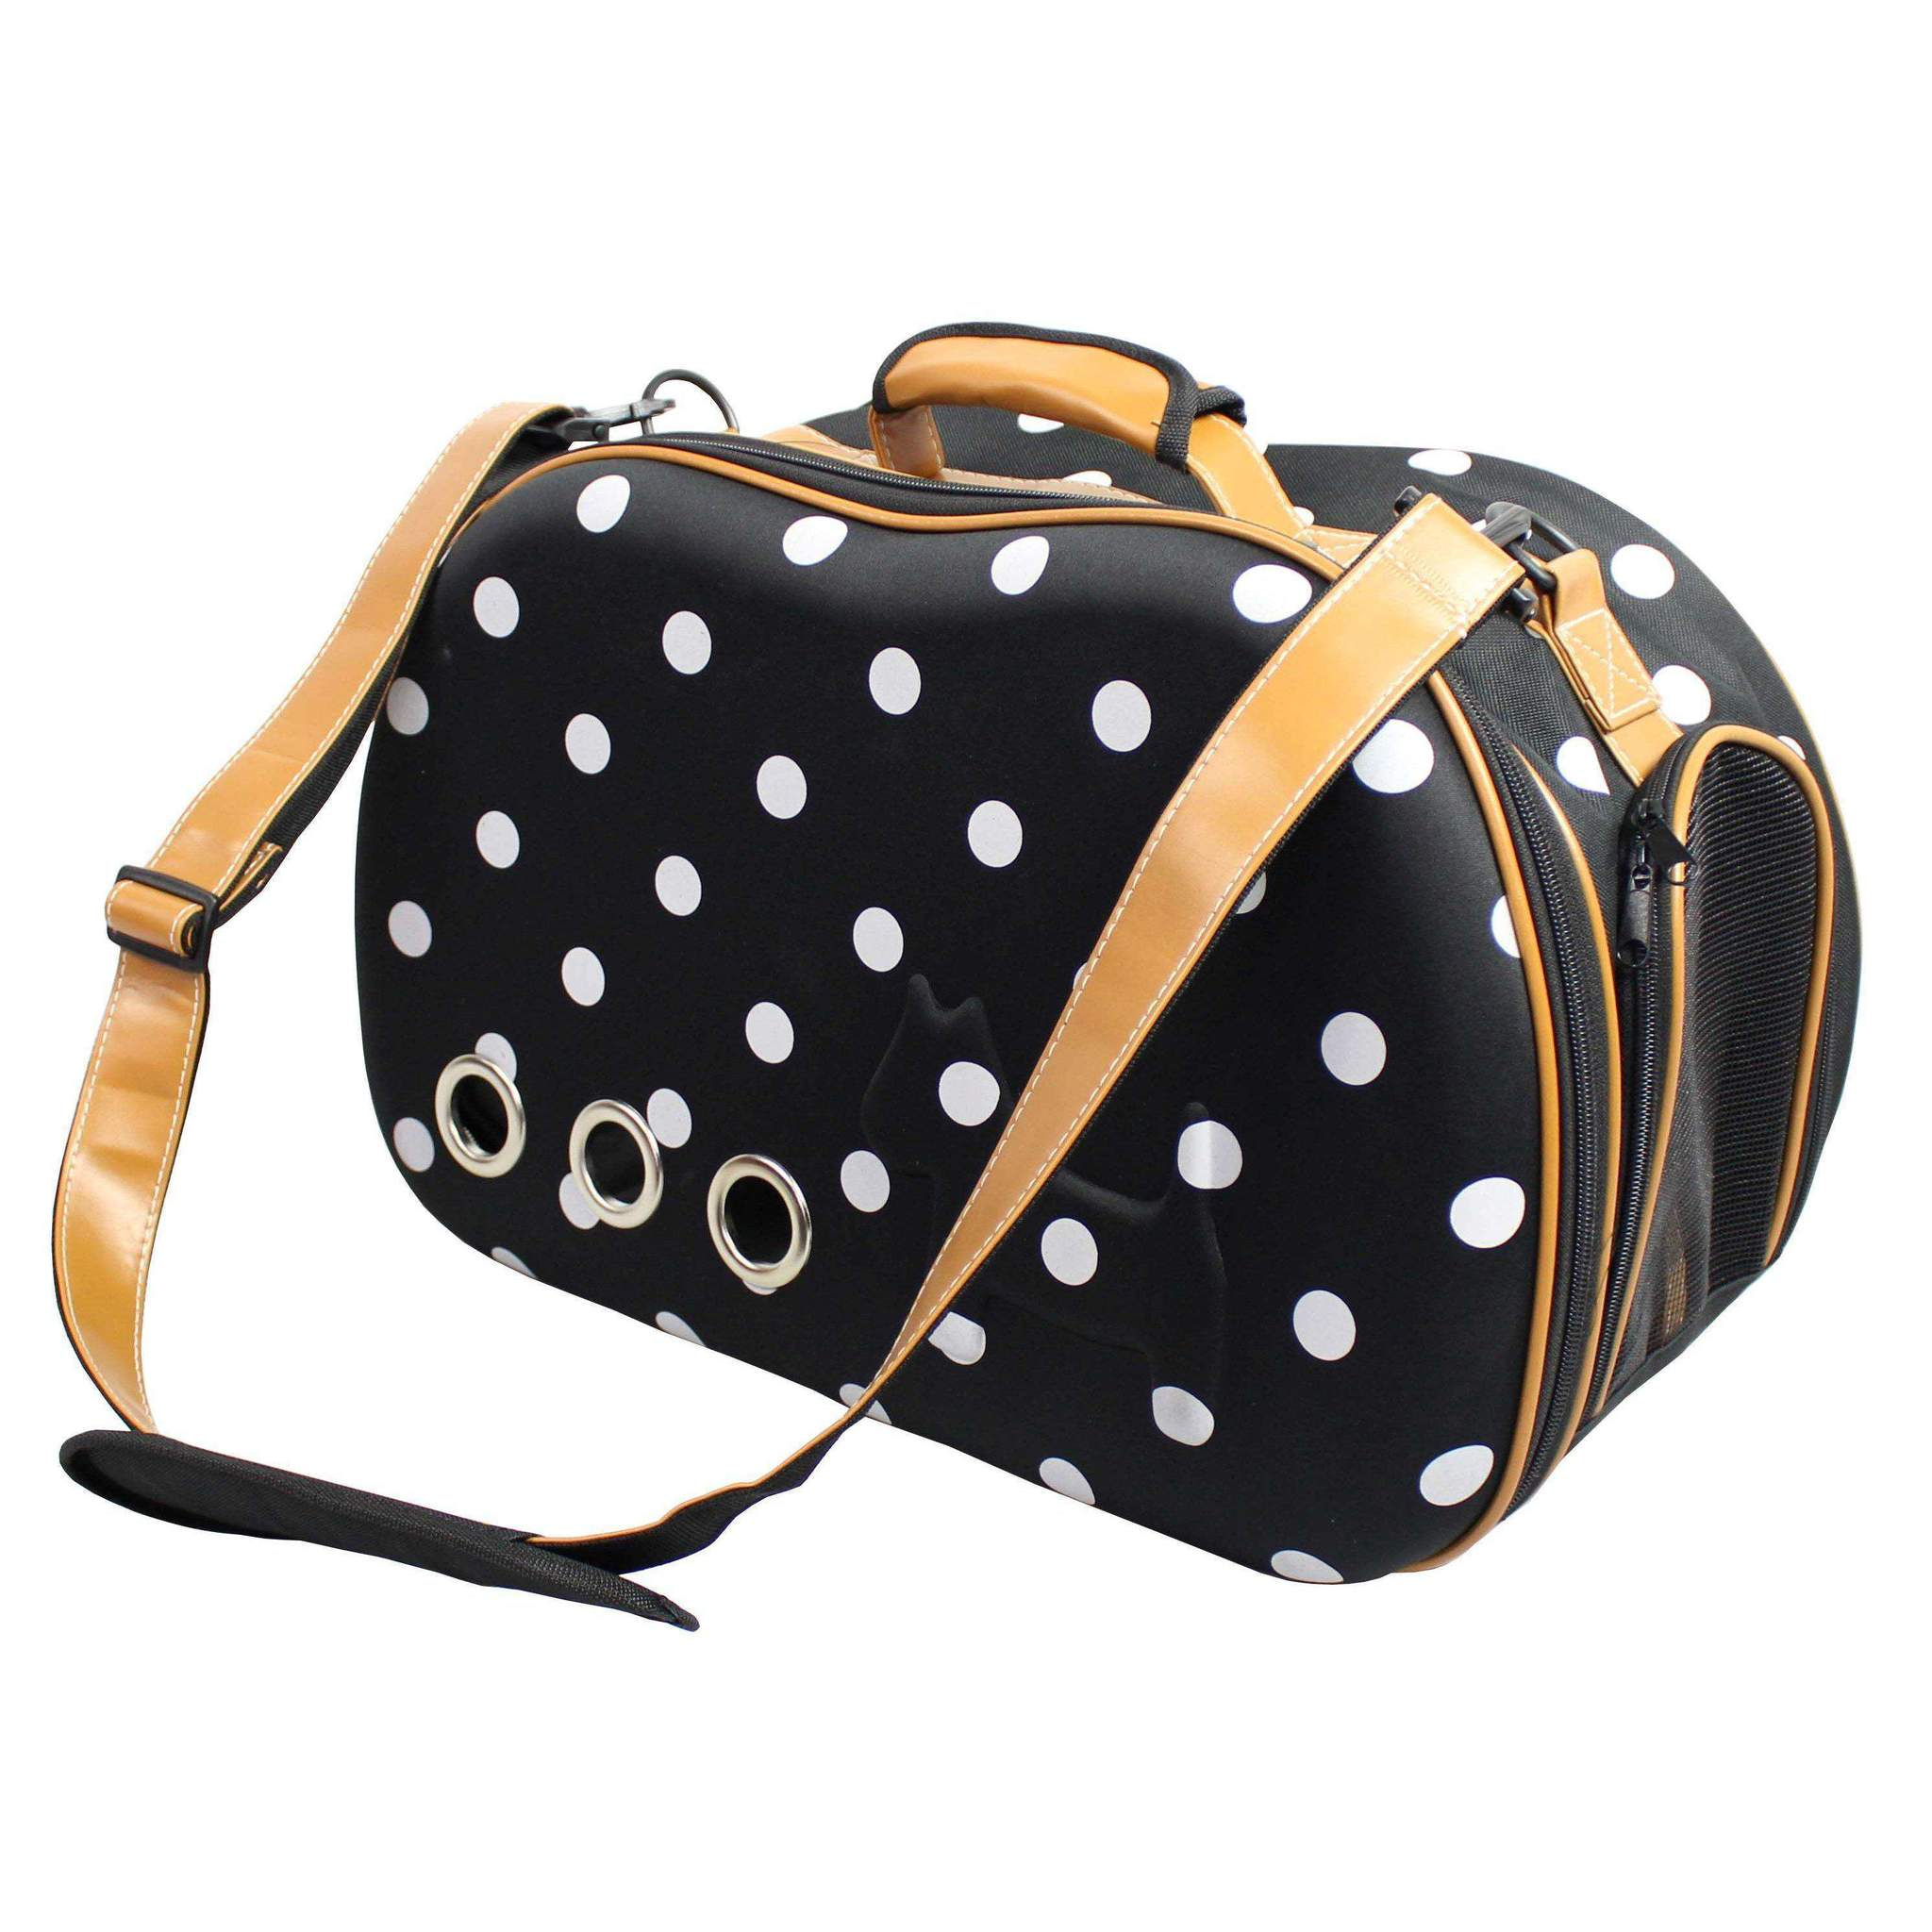 chic dog handbag carrier